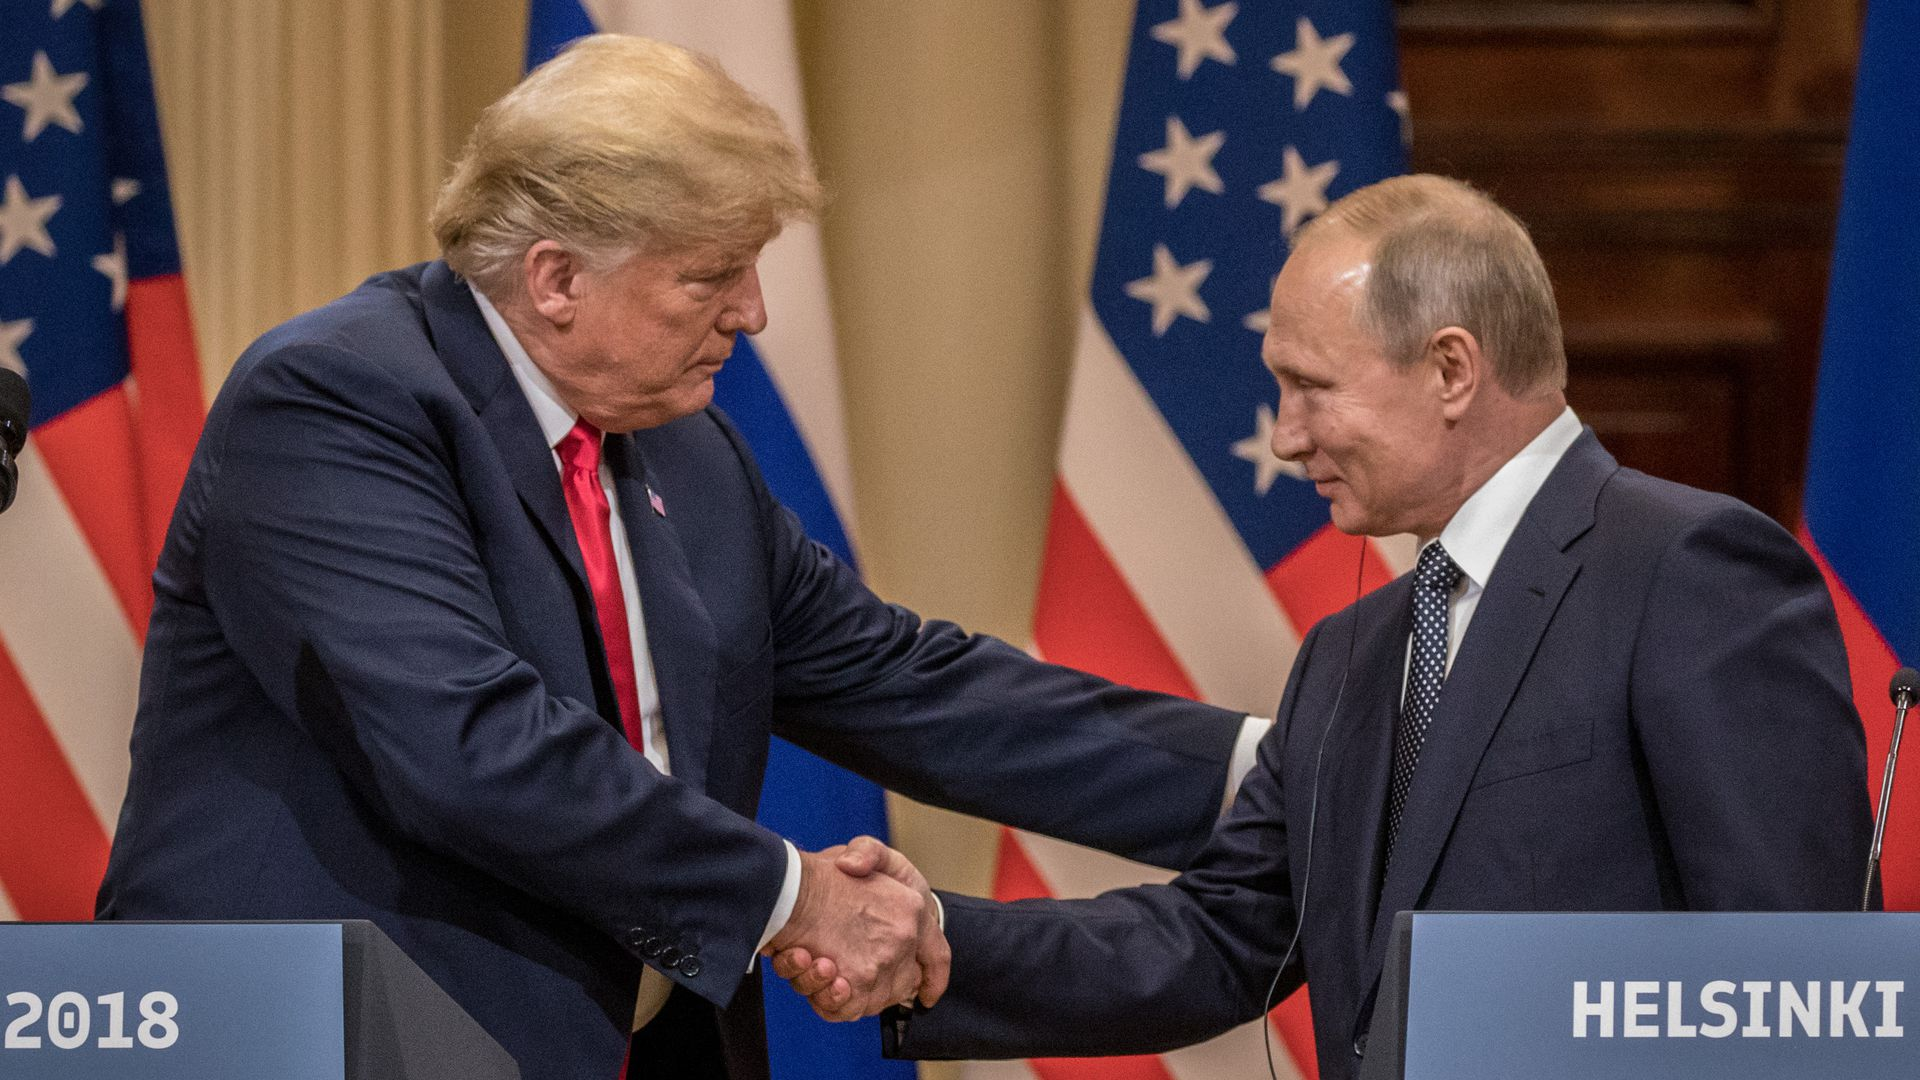 Trump and Putin smile and shake hands behind podiums in Helsinki